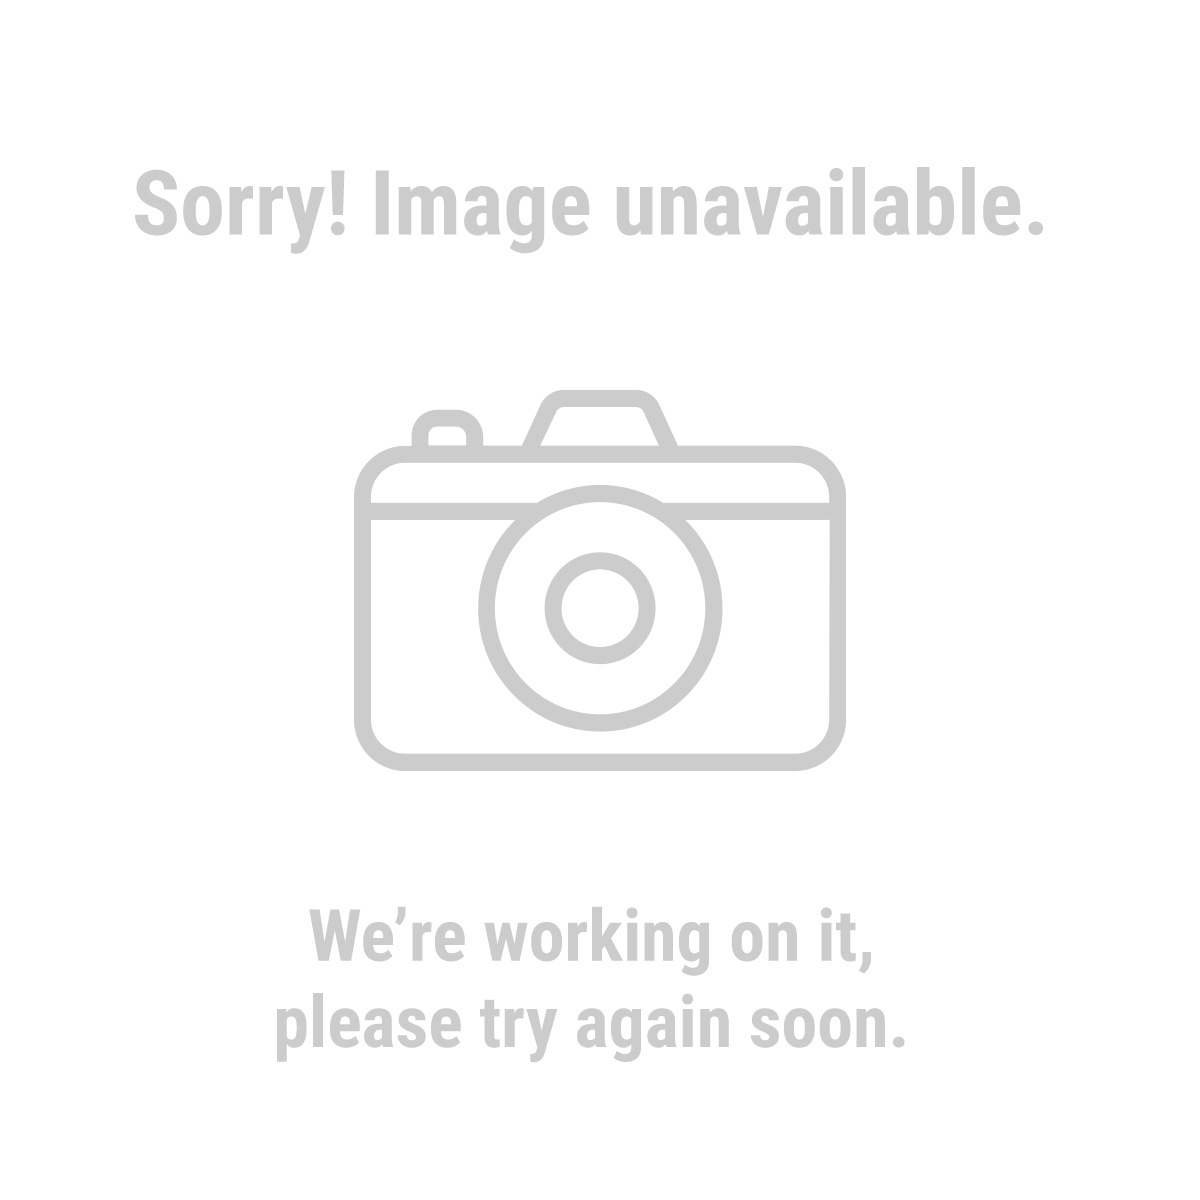 Pittsburgh 67937 7 Piece Impact Socket Adapter Set